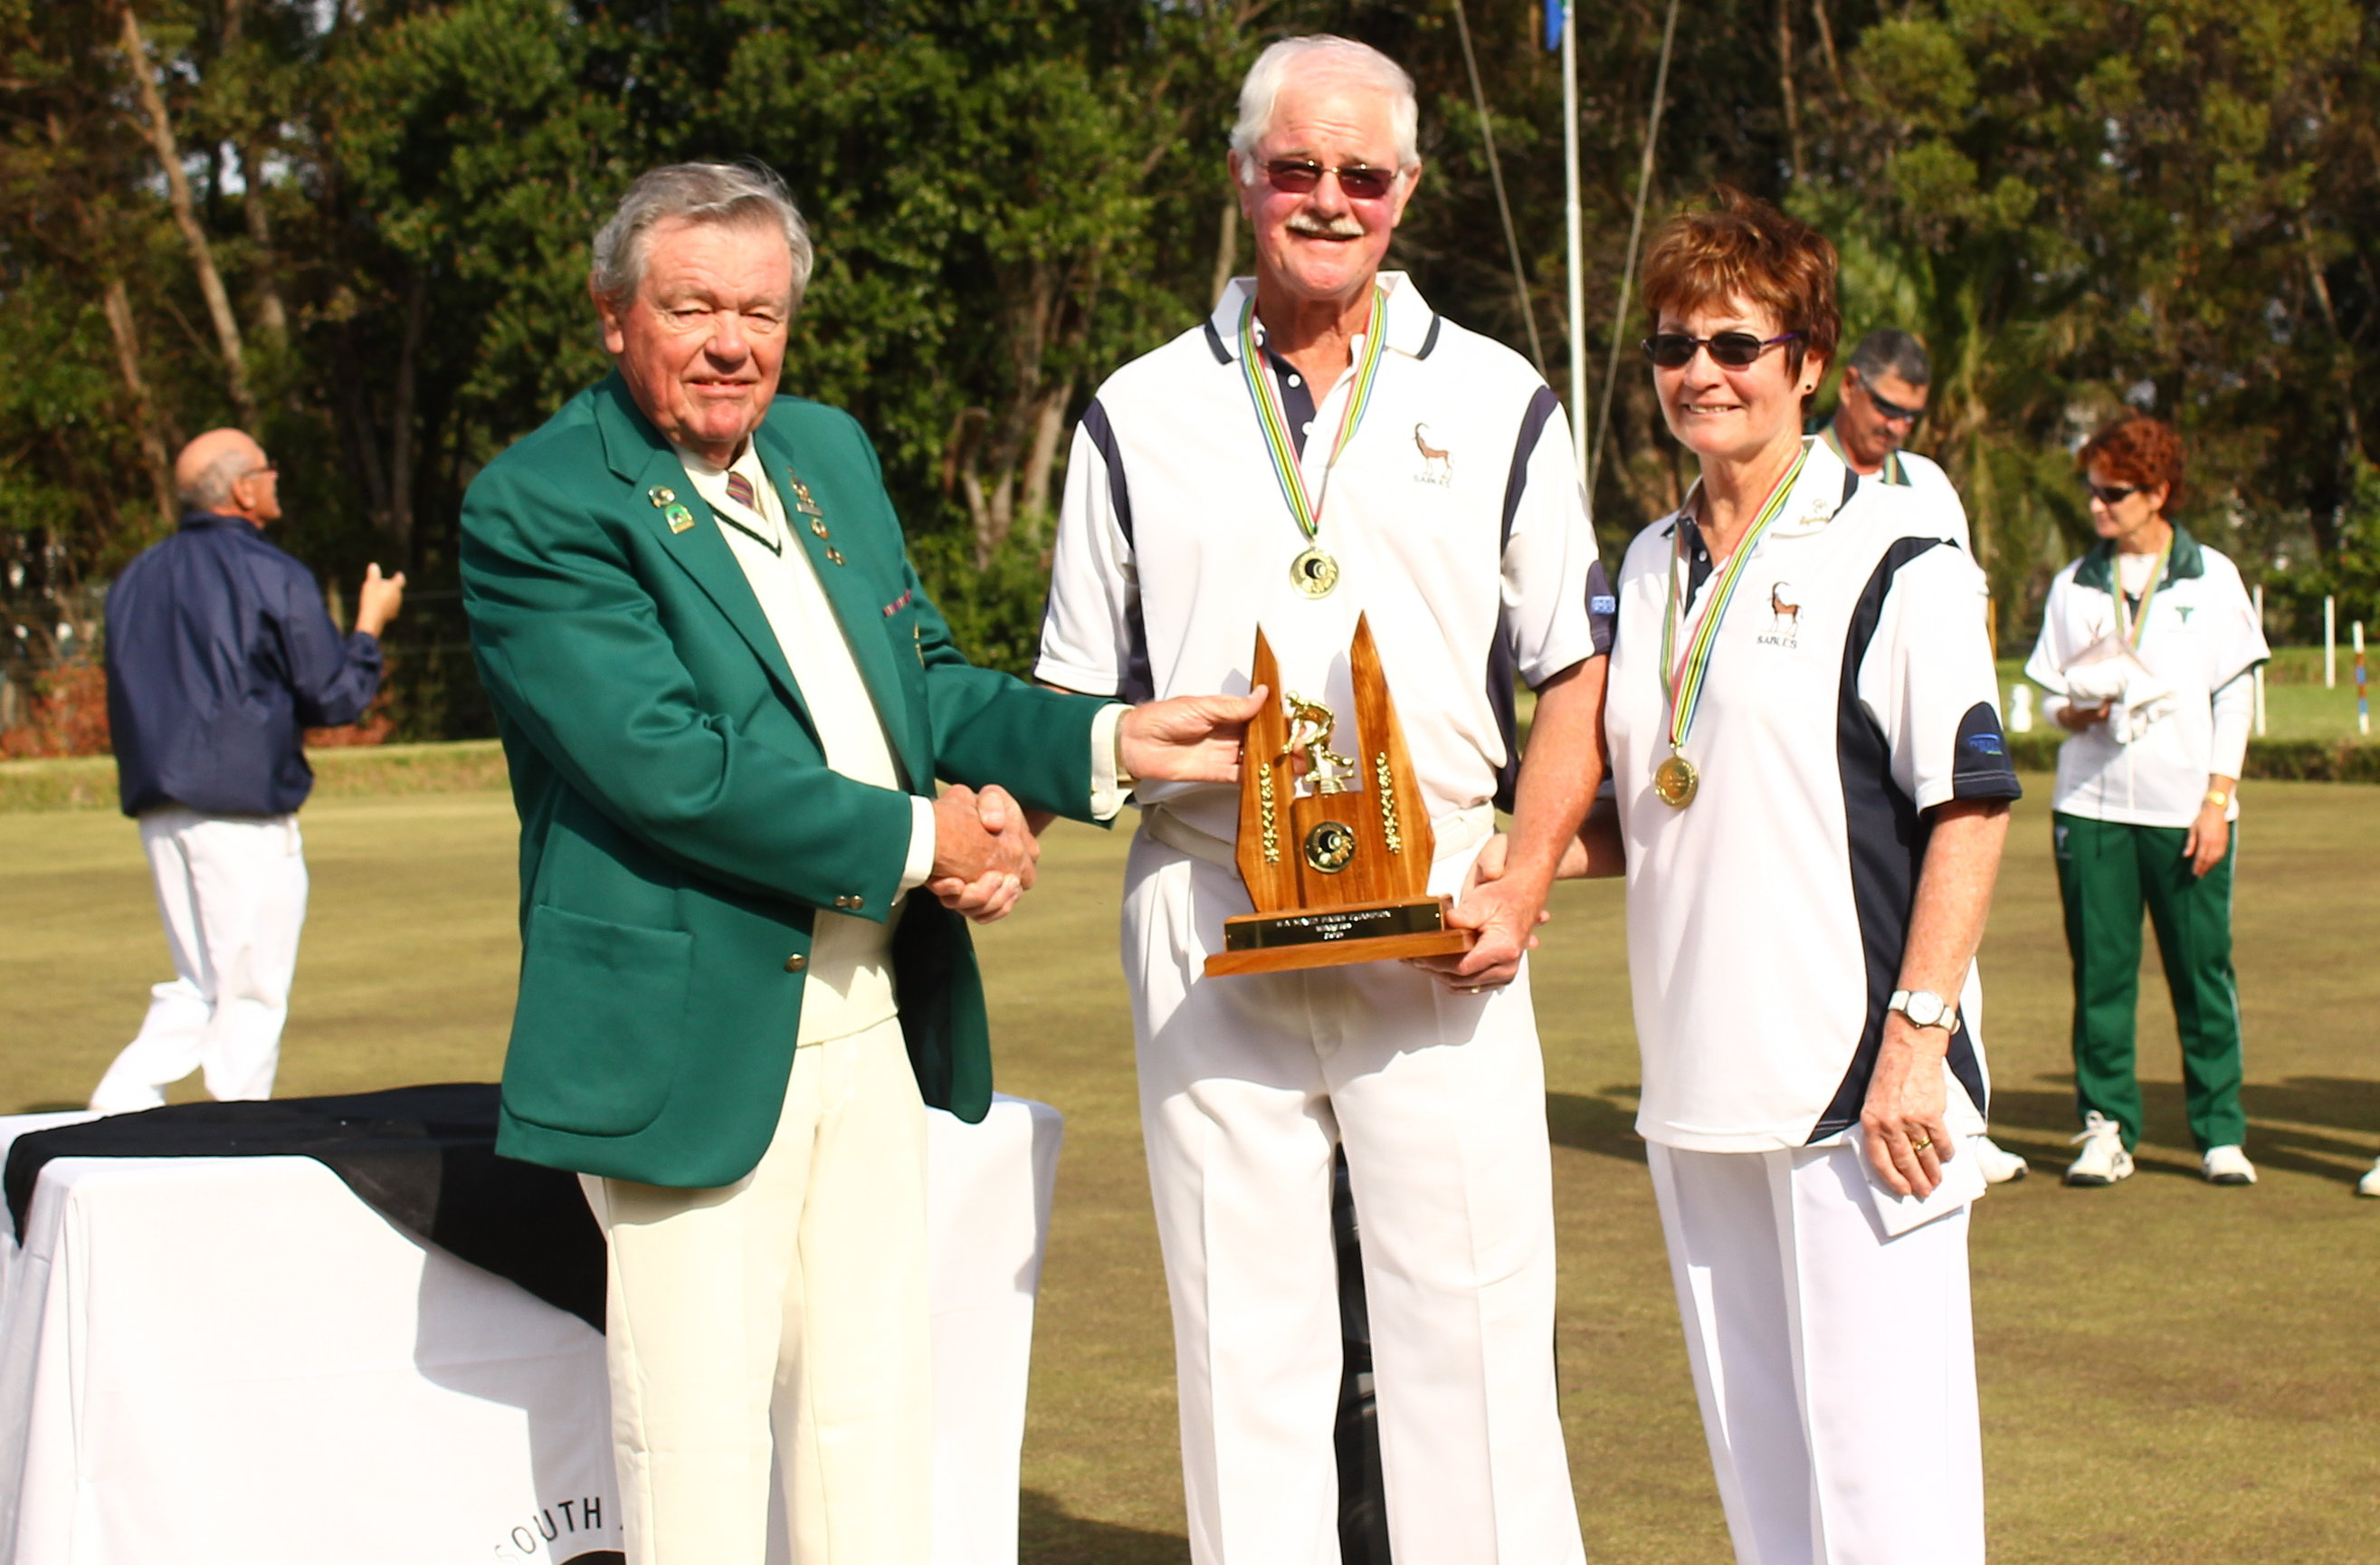 Marnewicks make merry to take SA mixed title